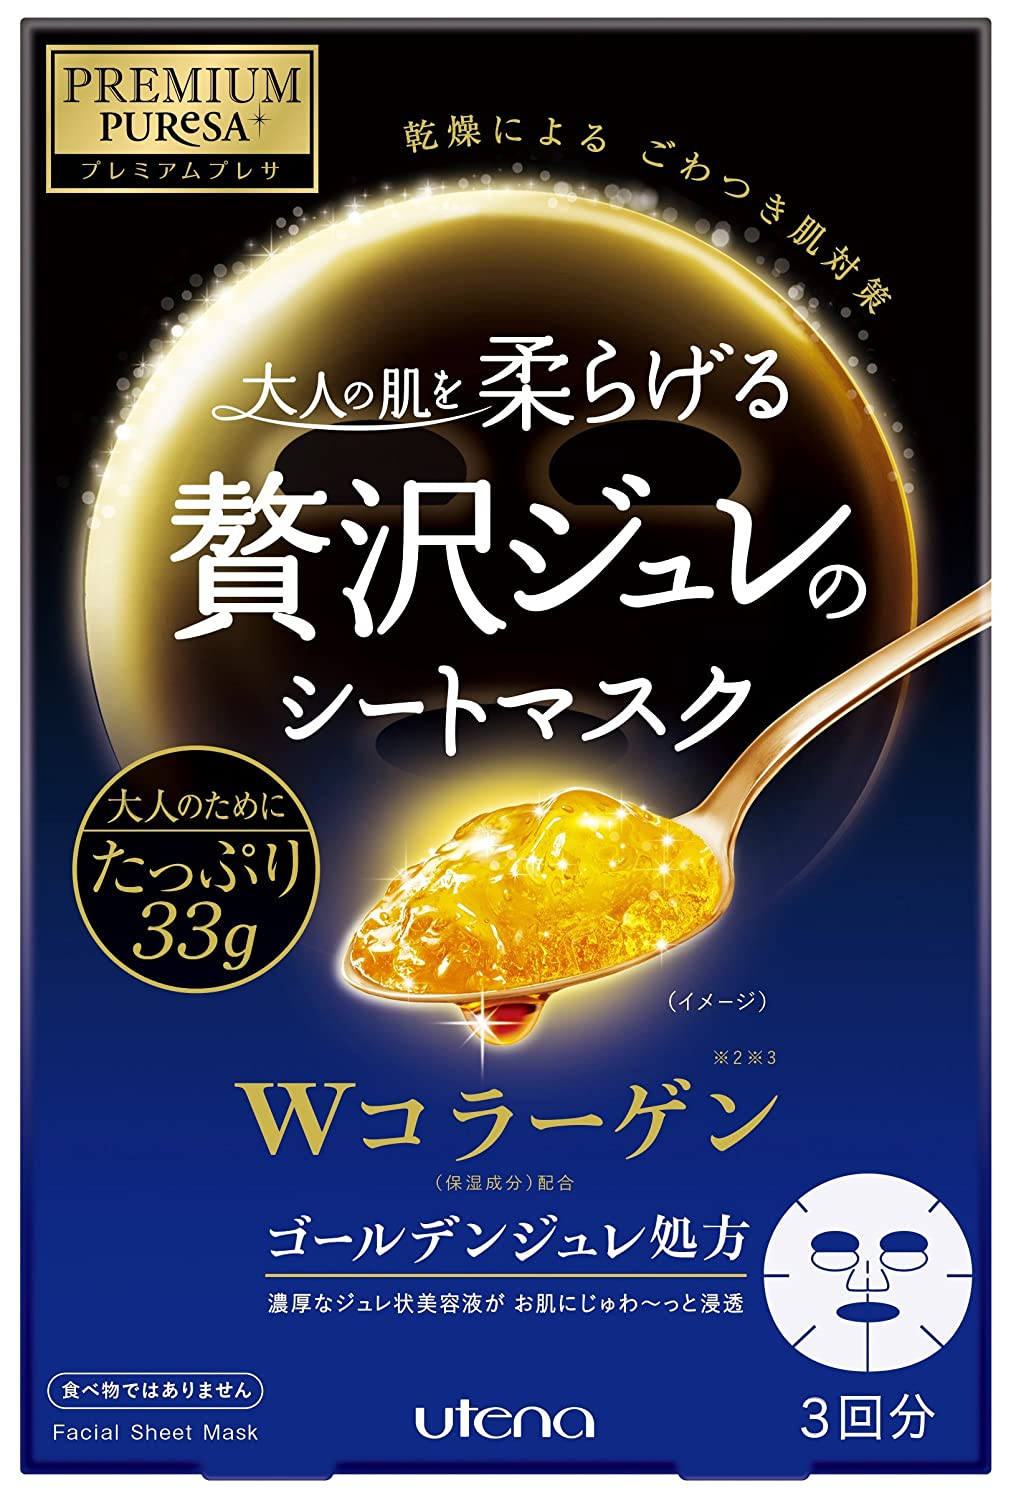 PREMIUM PUReSA (premium Presa) Golden jelly mask collagen 33g ¡Á 3 pieces *AF27* 4901234299313